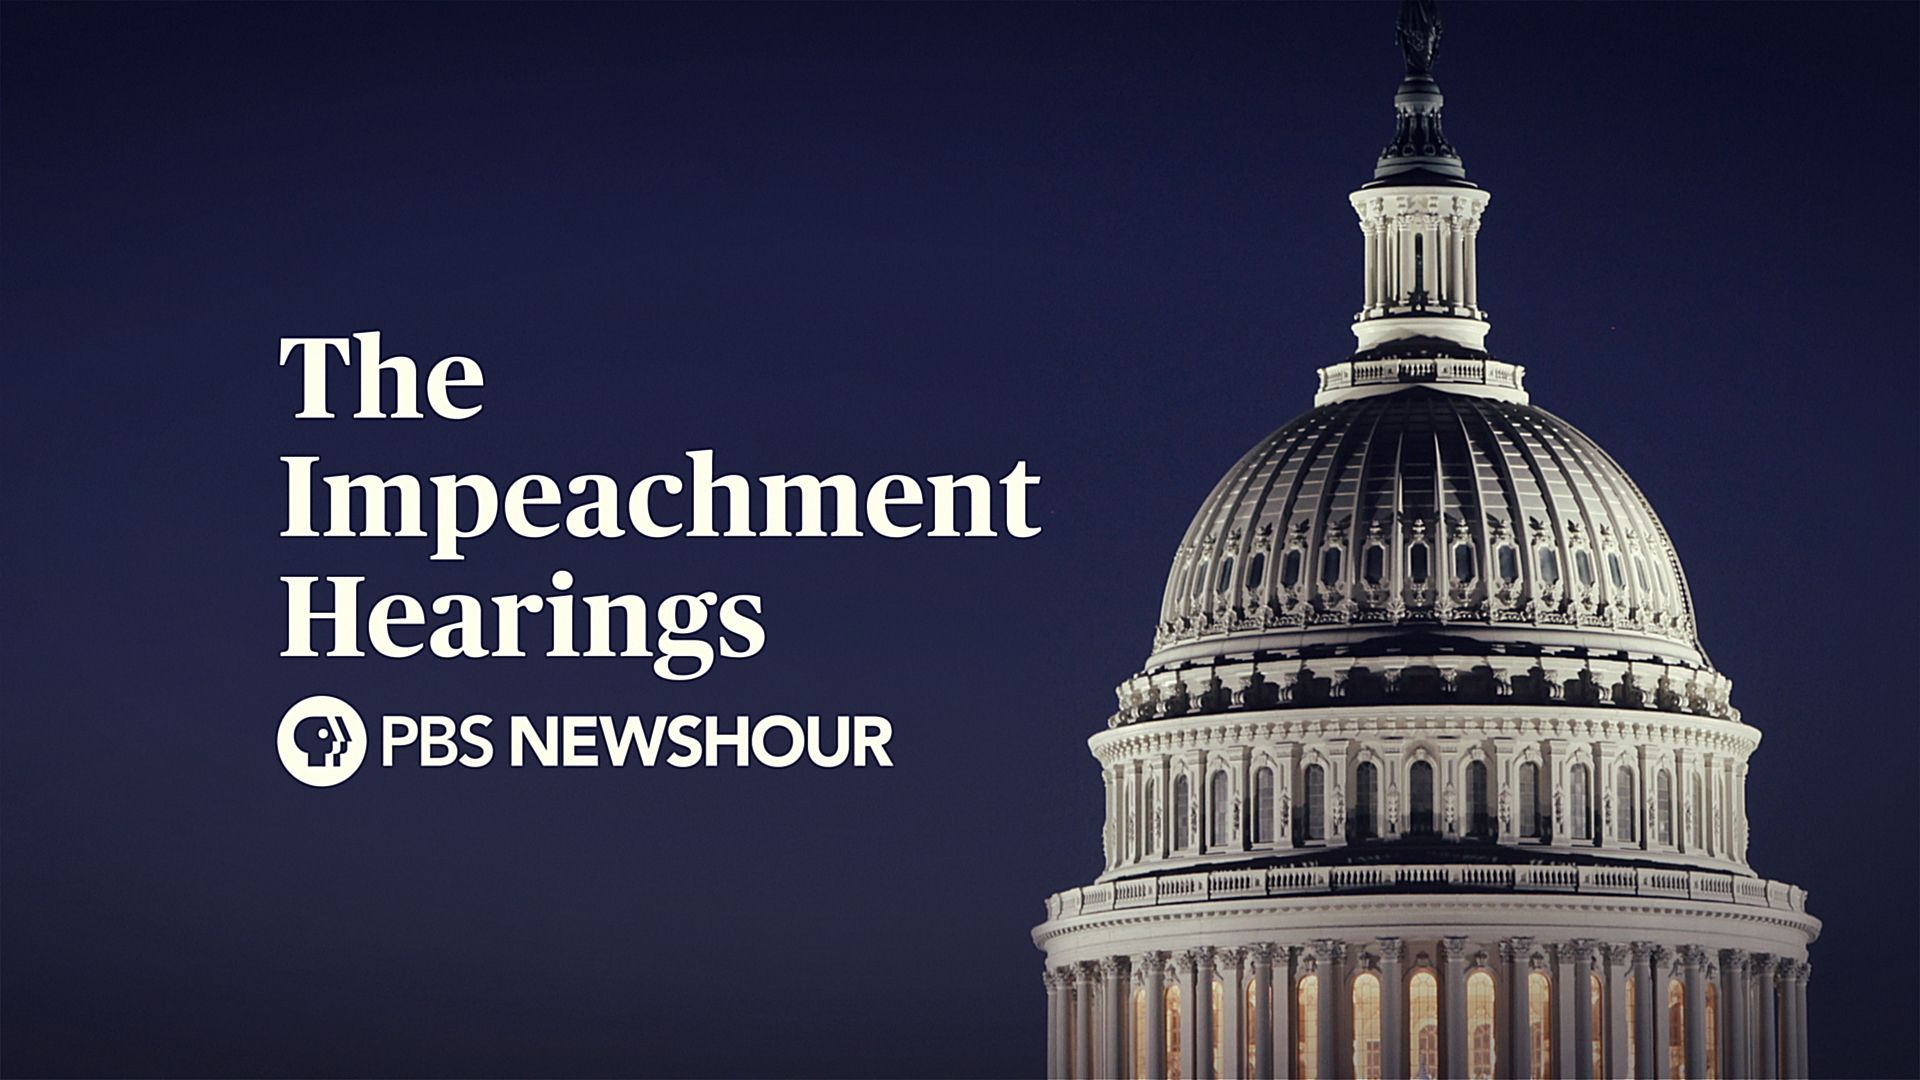 The_Impeachment_Hearings_16x9_-_PBS_Only_1.jpg - 1.23 MB